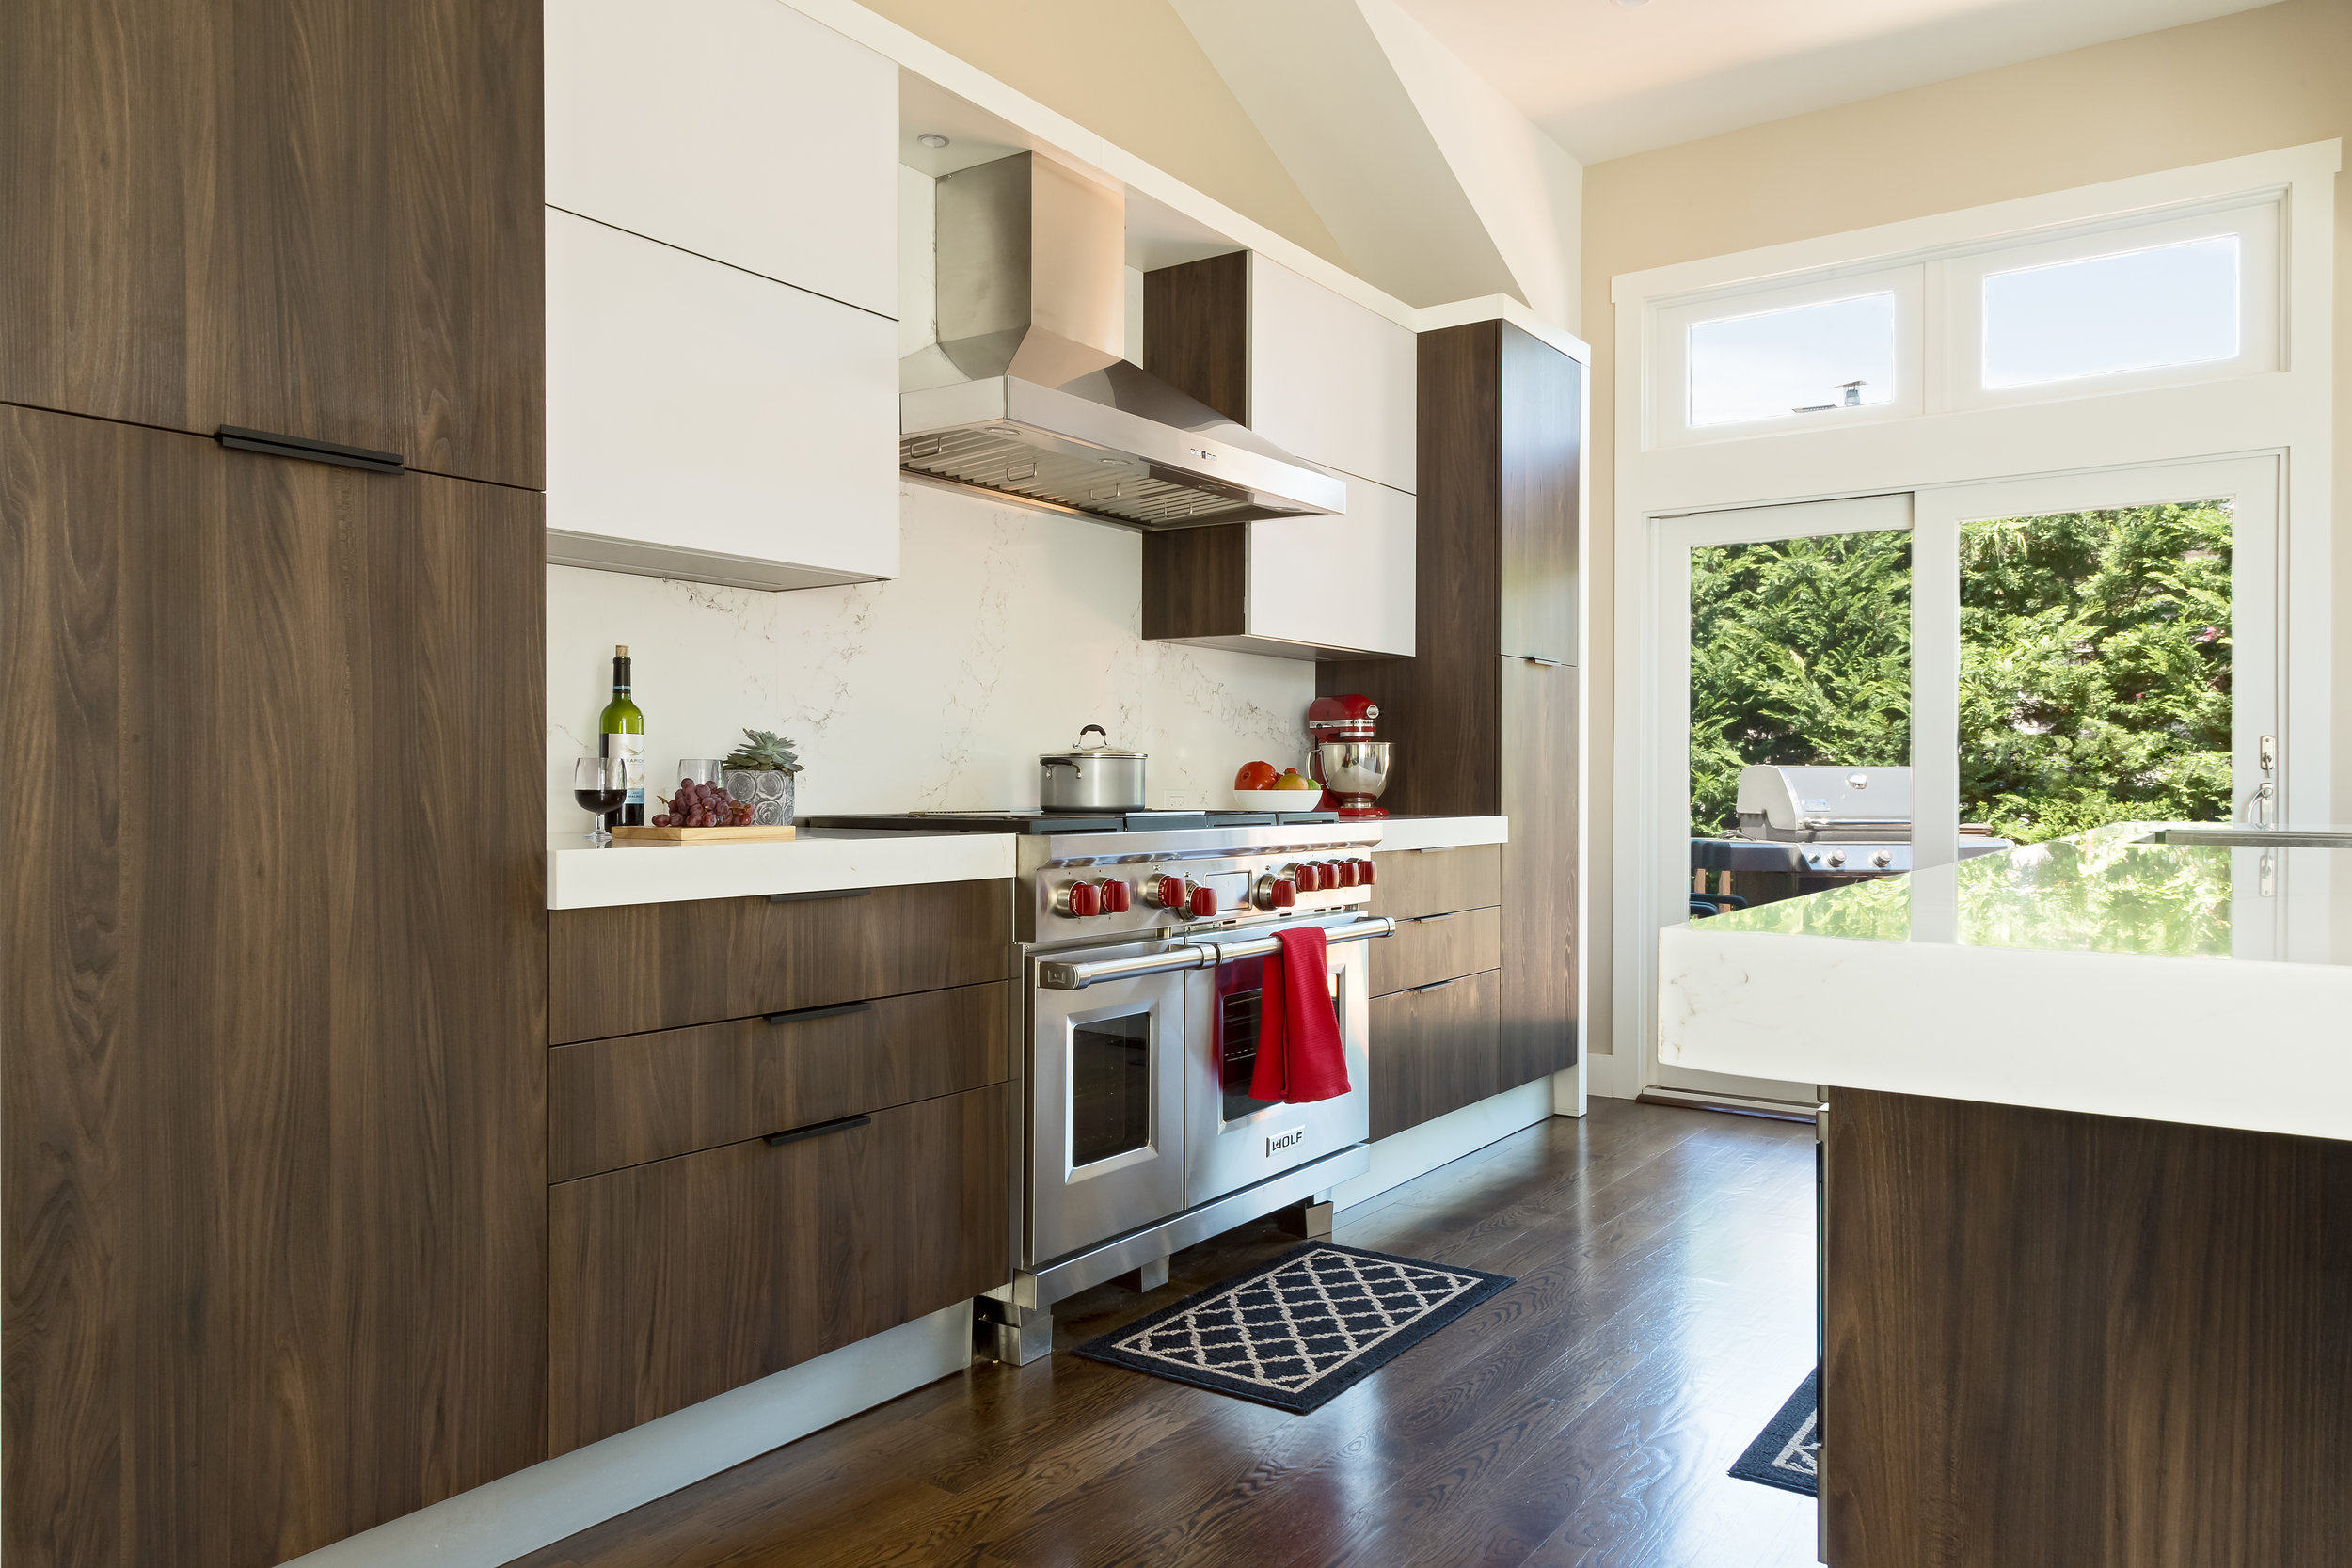 Contemporary style kitchen with wooden pull out drawers